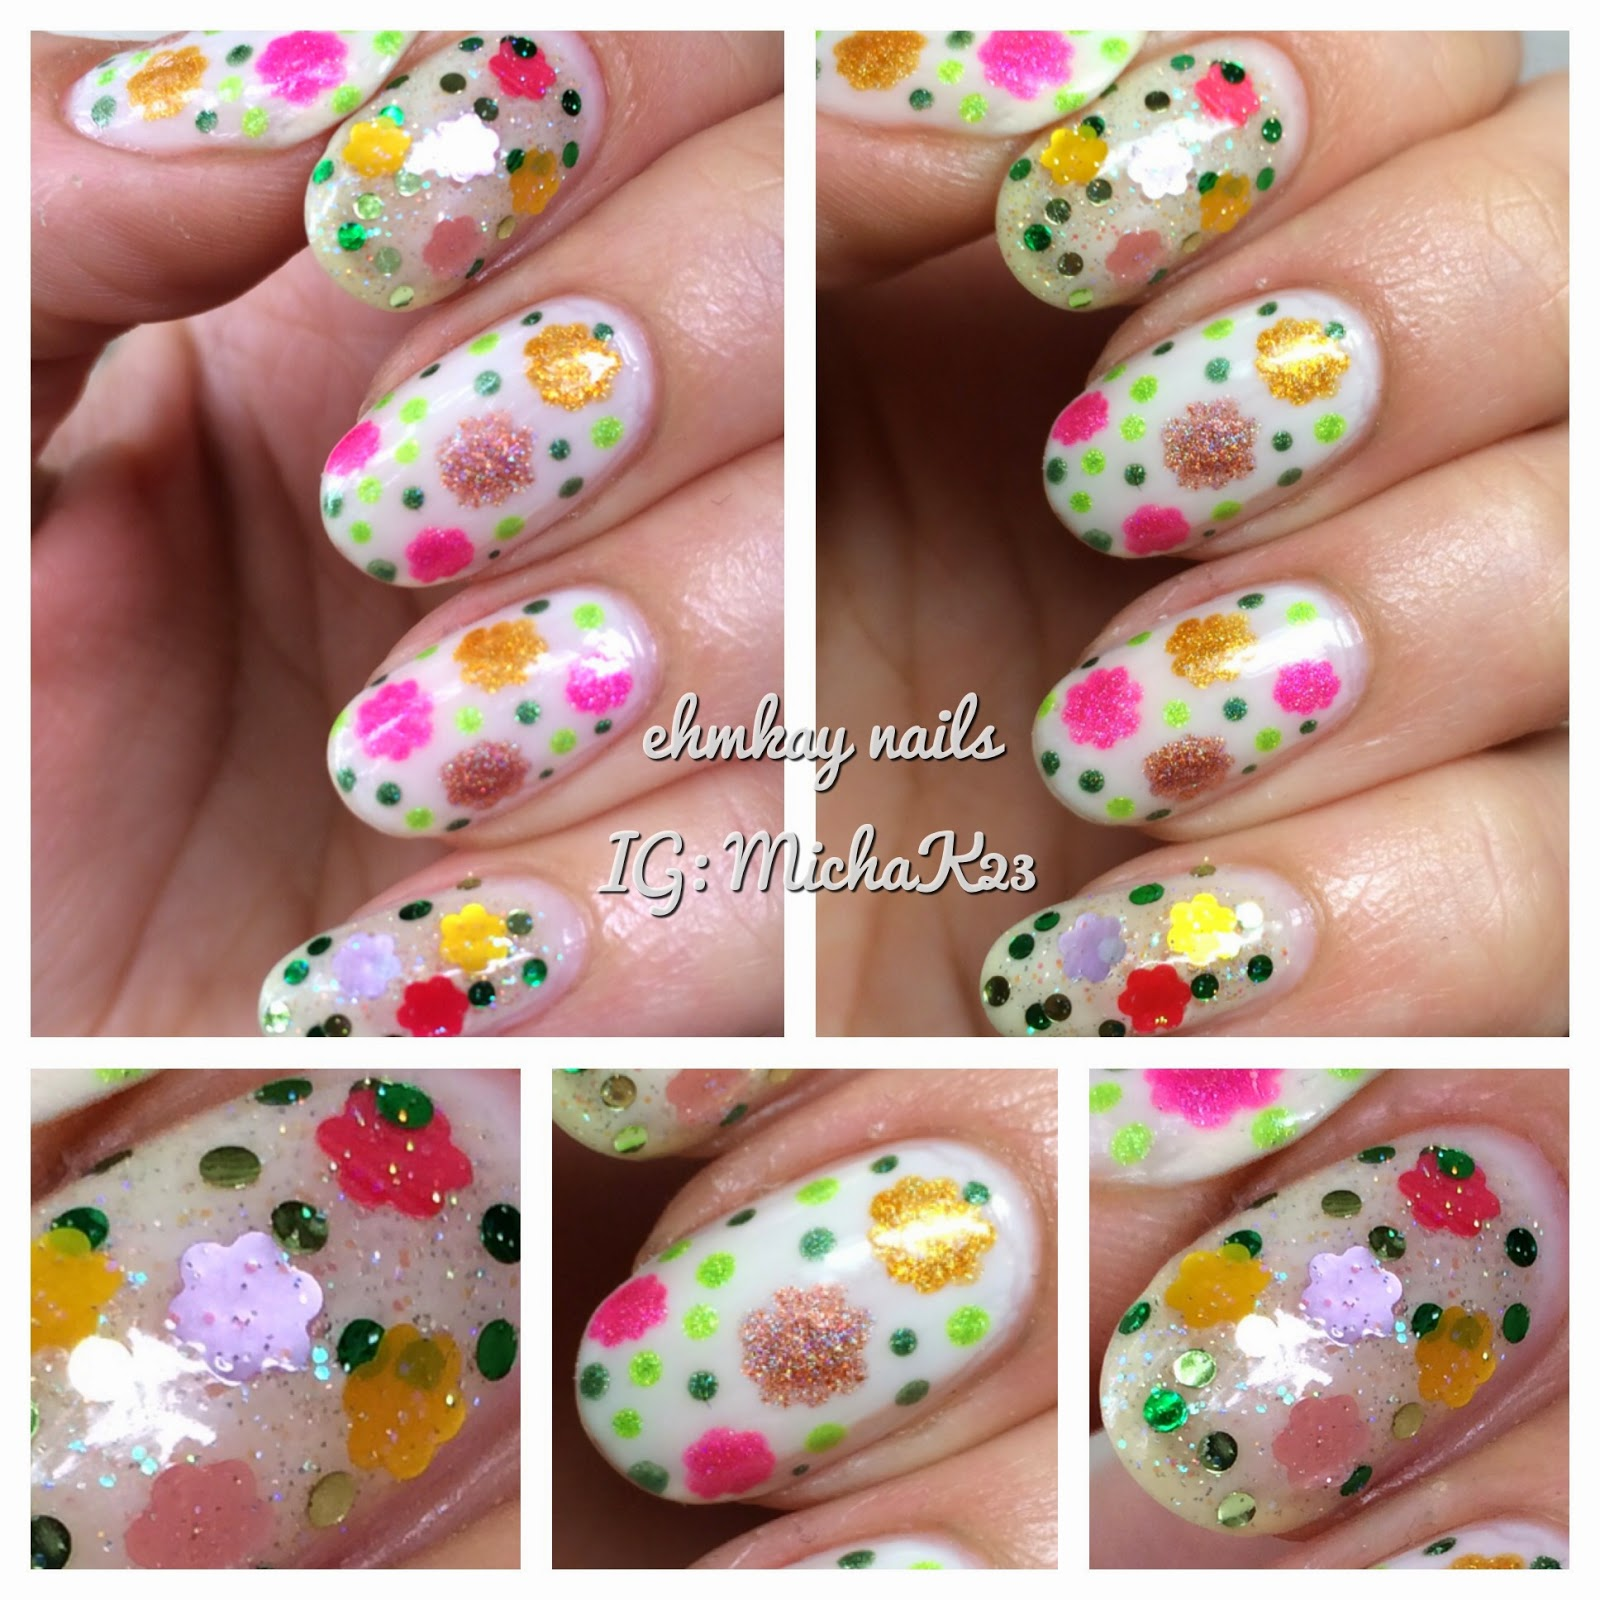 ehmkay nails: Daisy Nail Art with Red Dog Designs Flower Power with ...